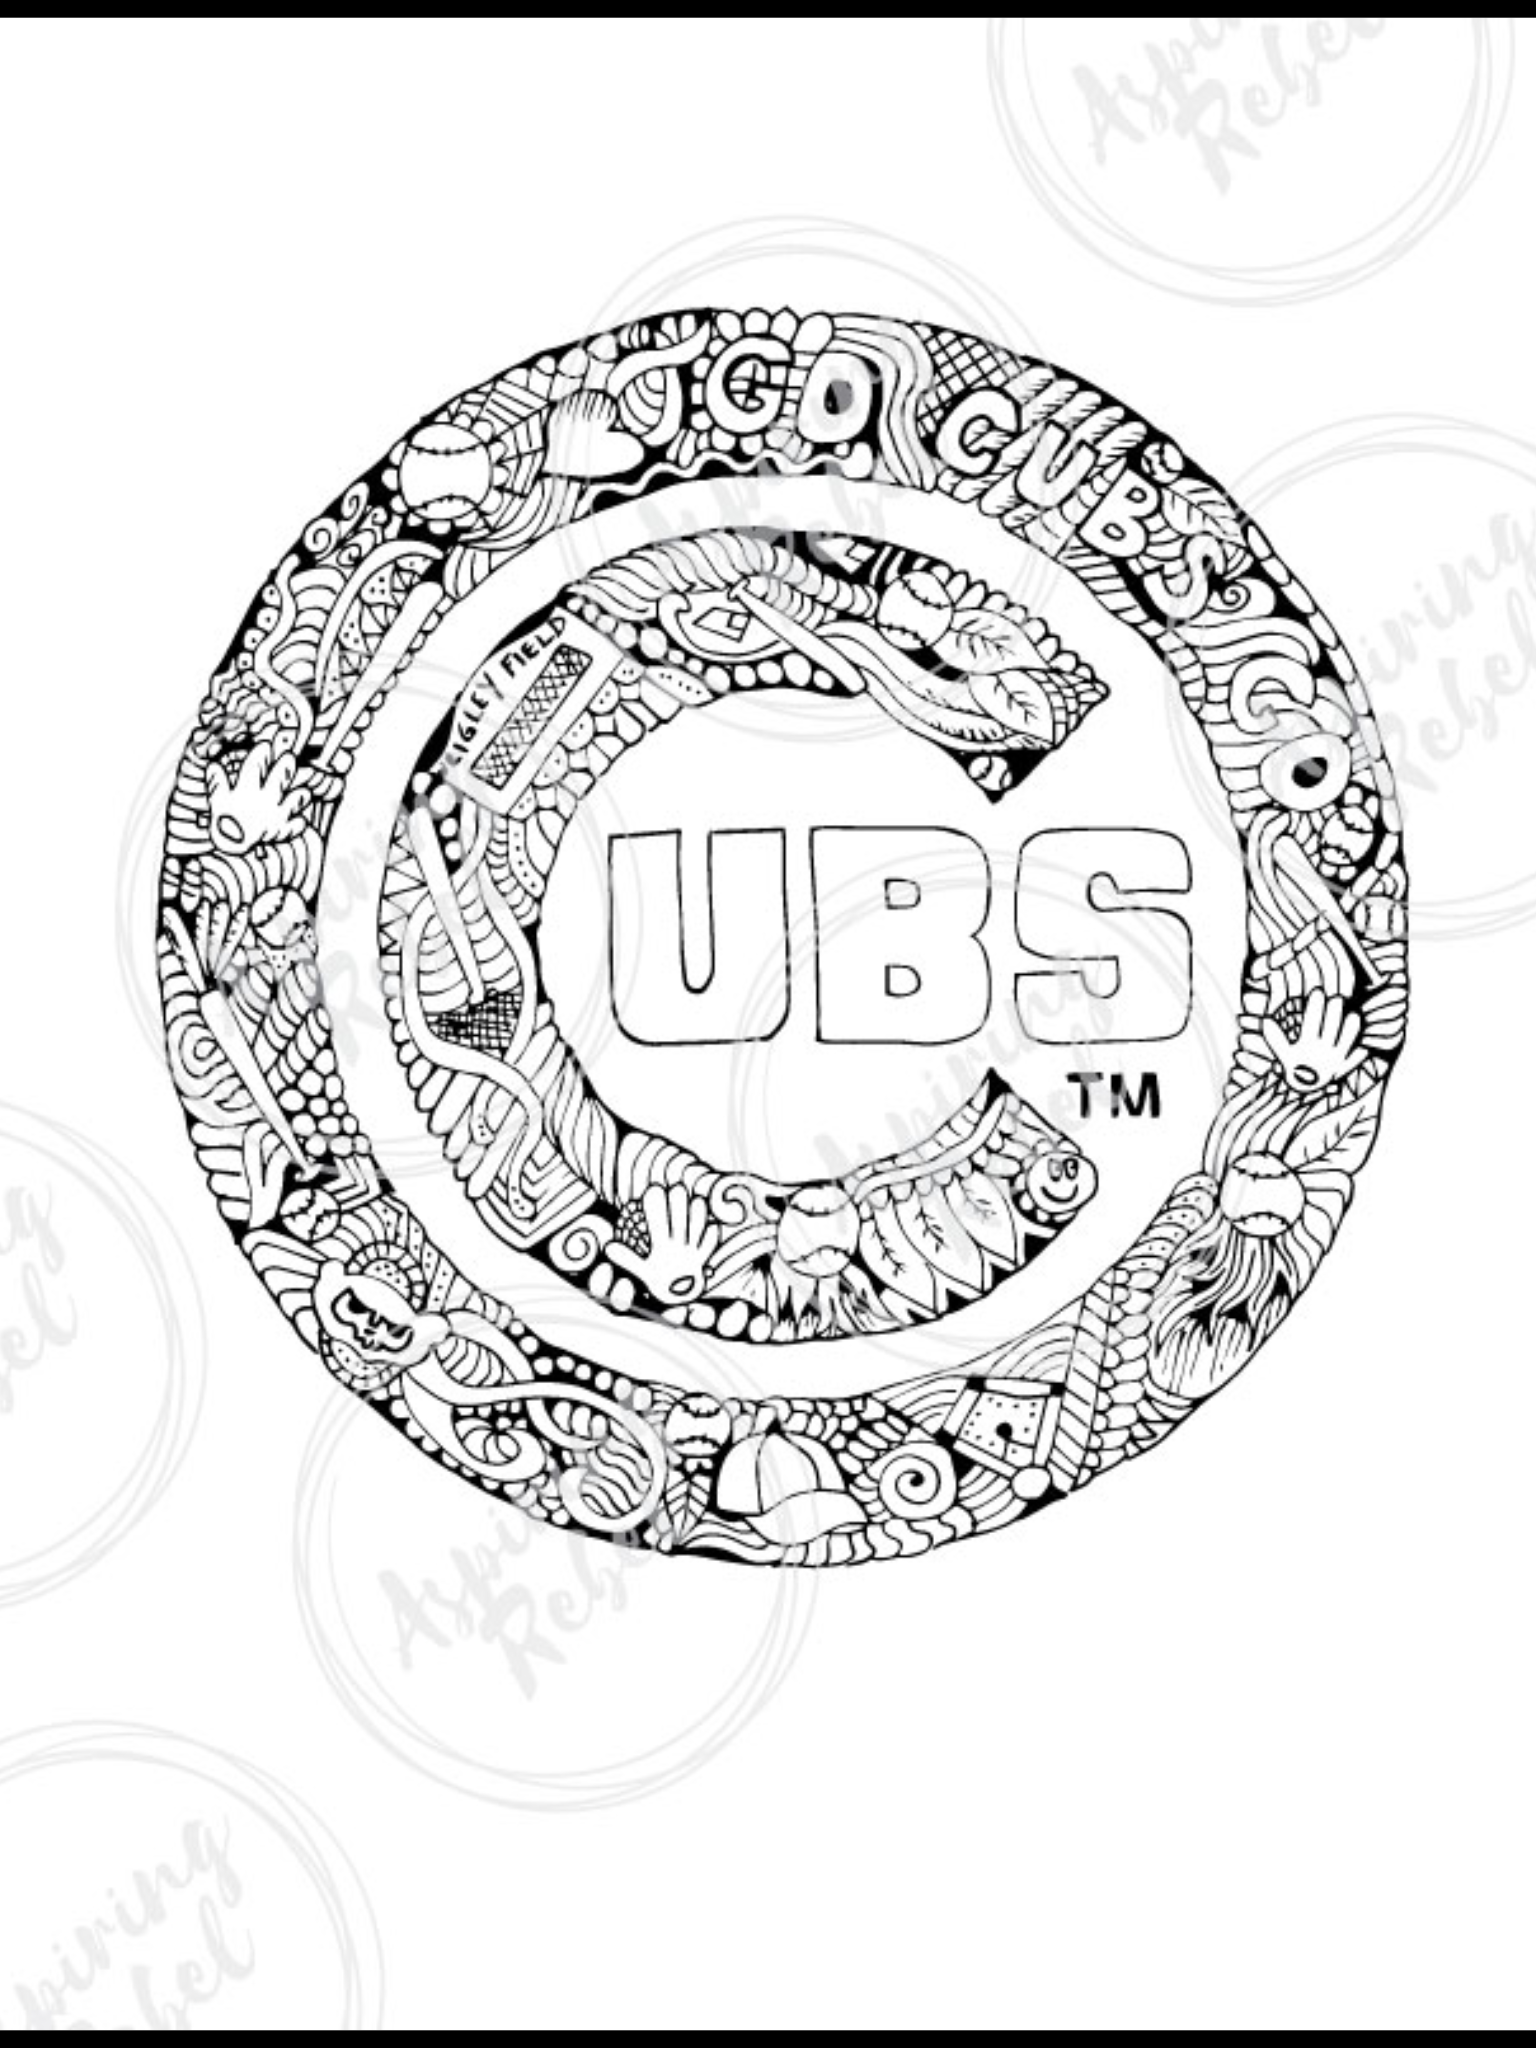 Pin By Terri Arduini On Cubs Baseball Coloring Pages Chicago Cubs Colors Sports Coloring Pages